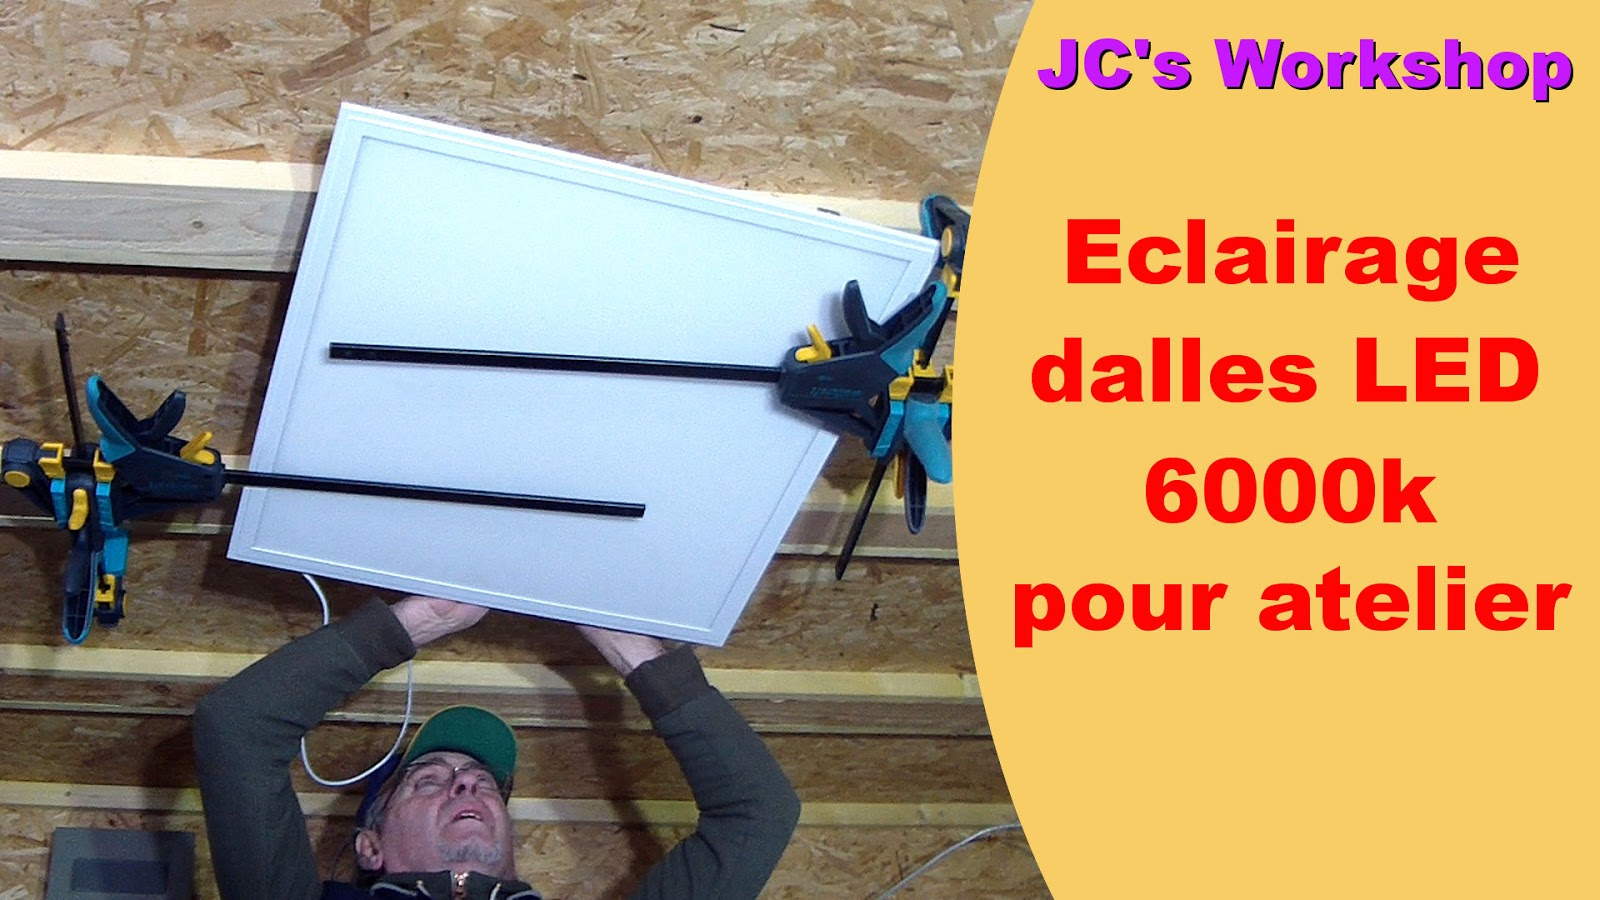 Eclairage Dalle Led Jc S Workshop L éclairage De L Atelier Dalles Led 40w 6000k